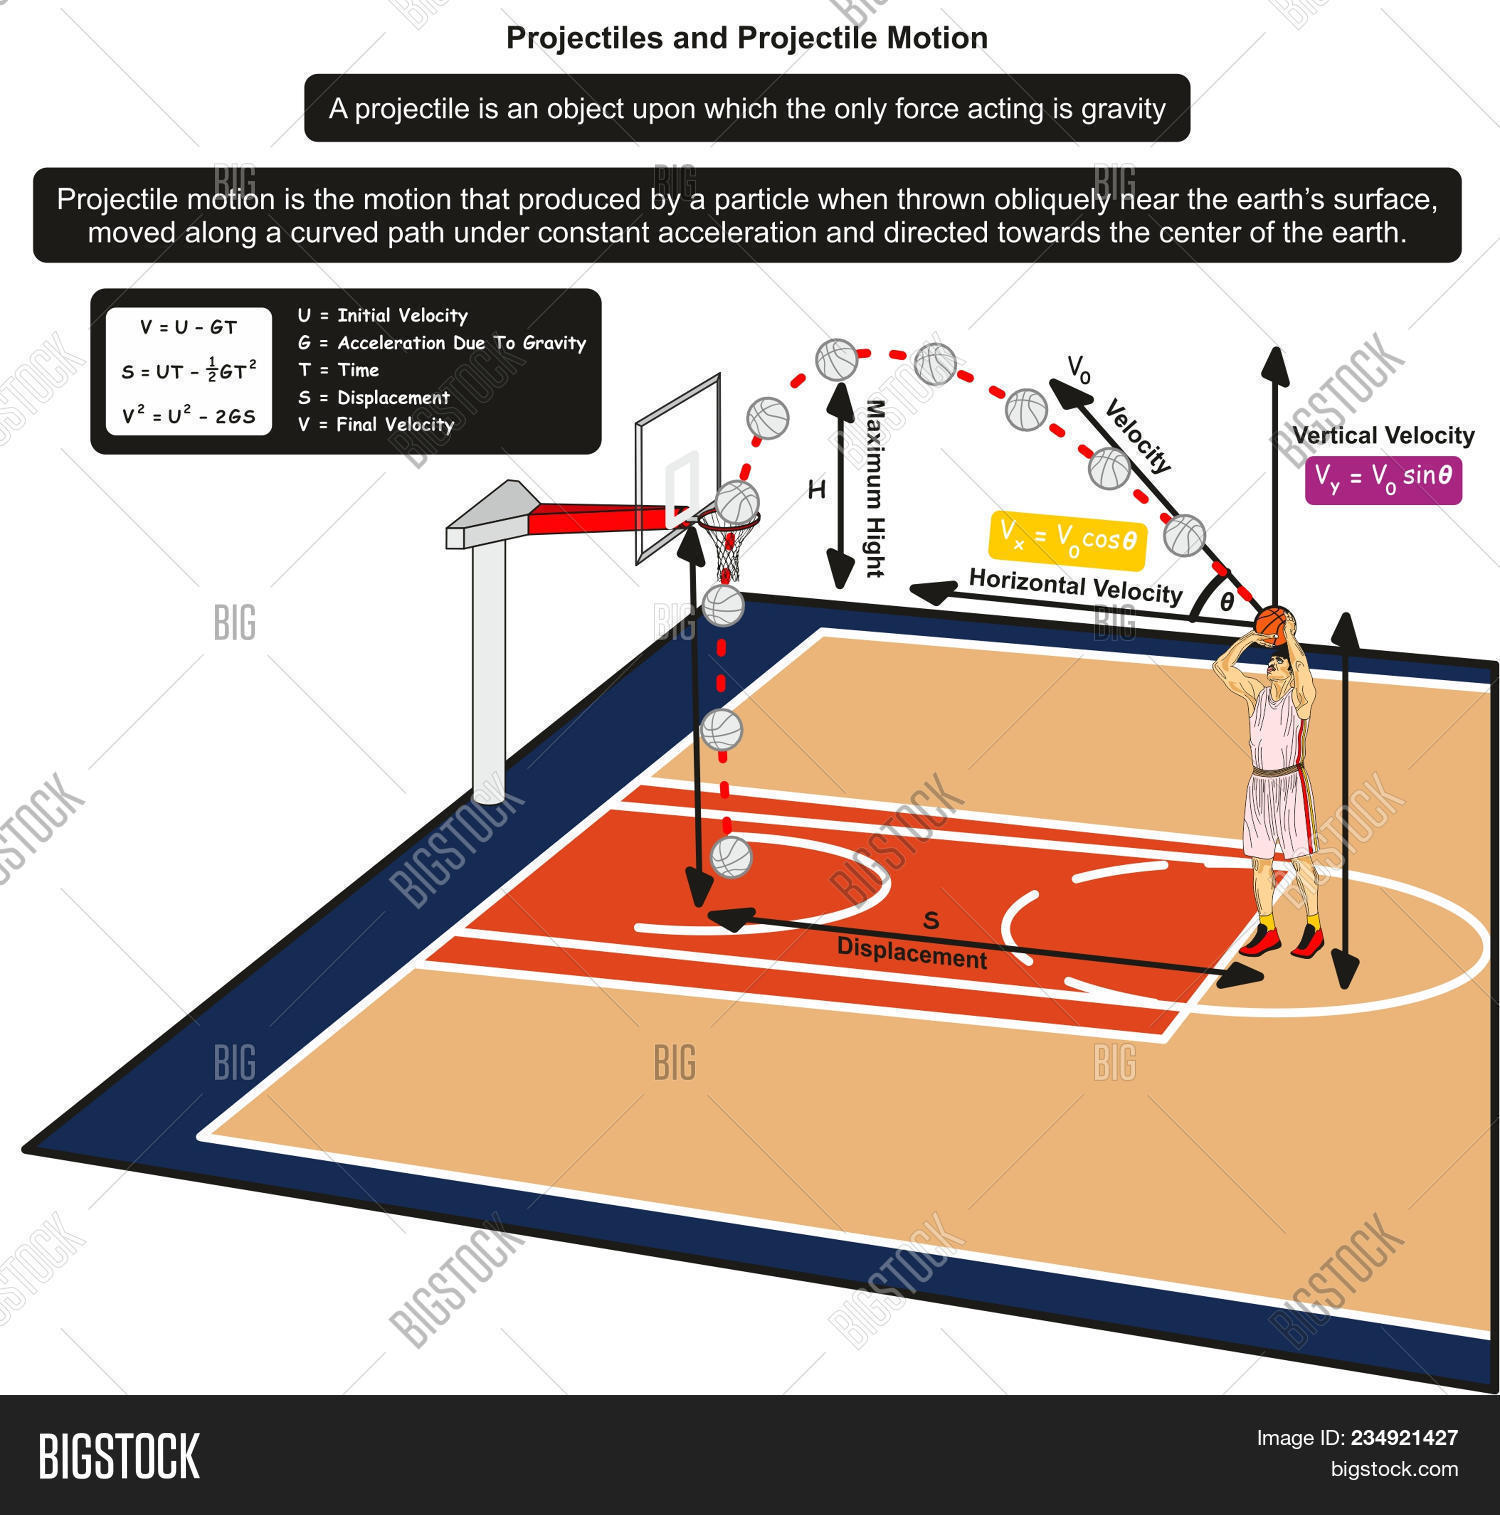 Projectiles Projectile Image Photo Free Trial Bigstock Basketball Hoop Diagram And Motion Infographic With An Example Of Player Throwing The Ball To